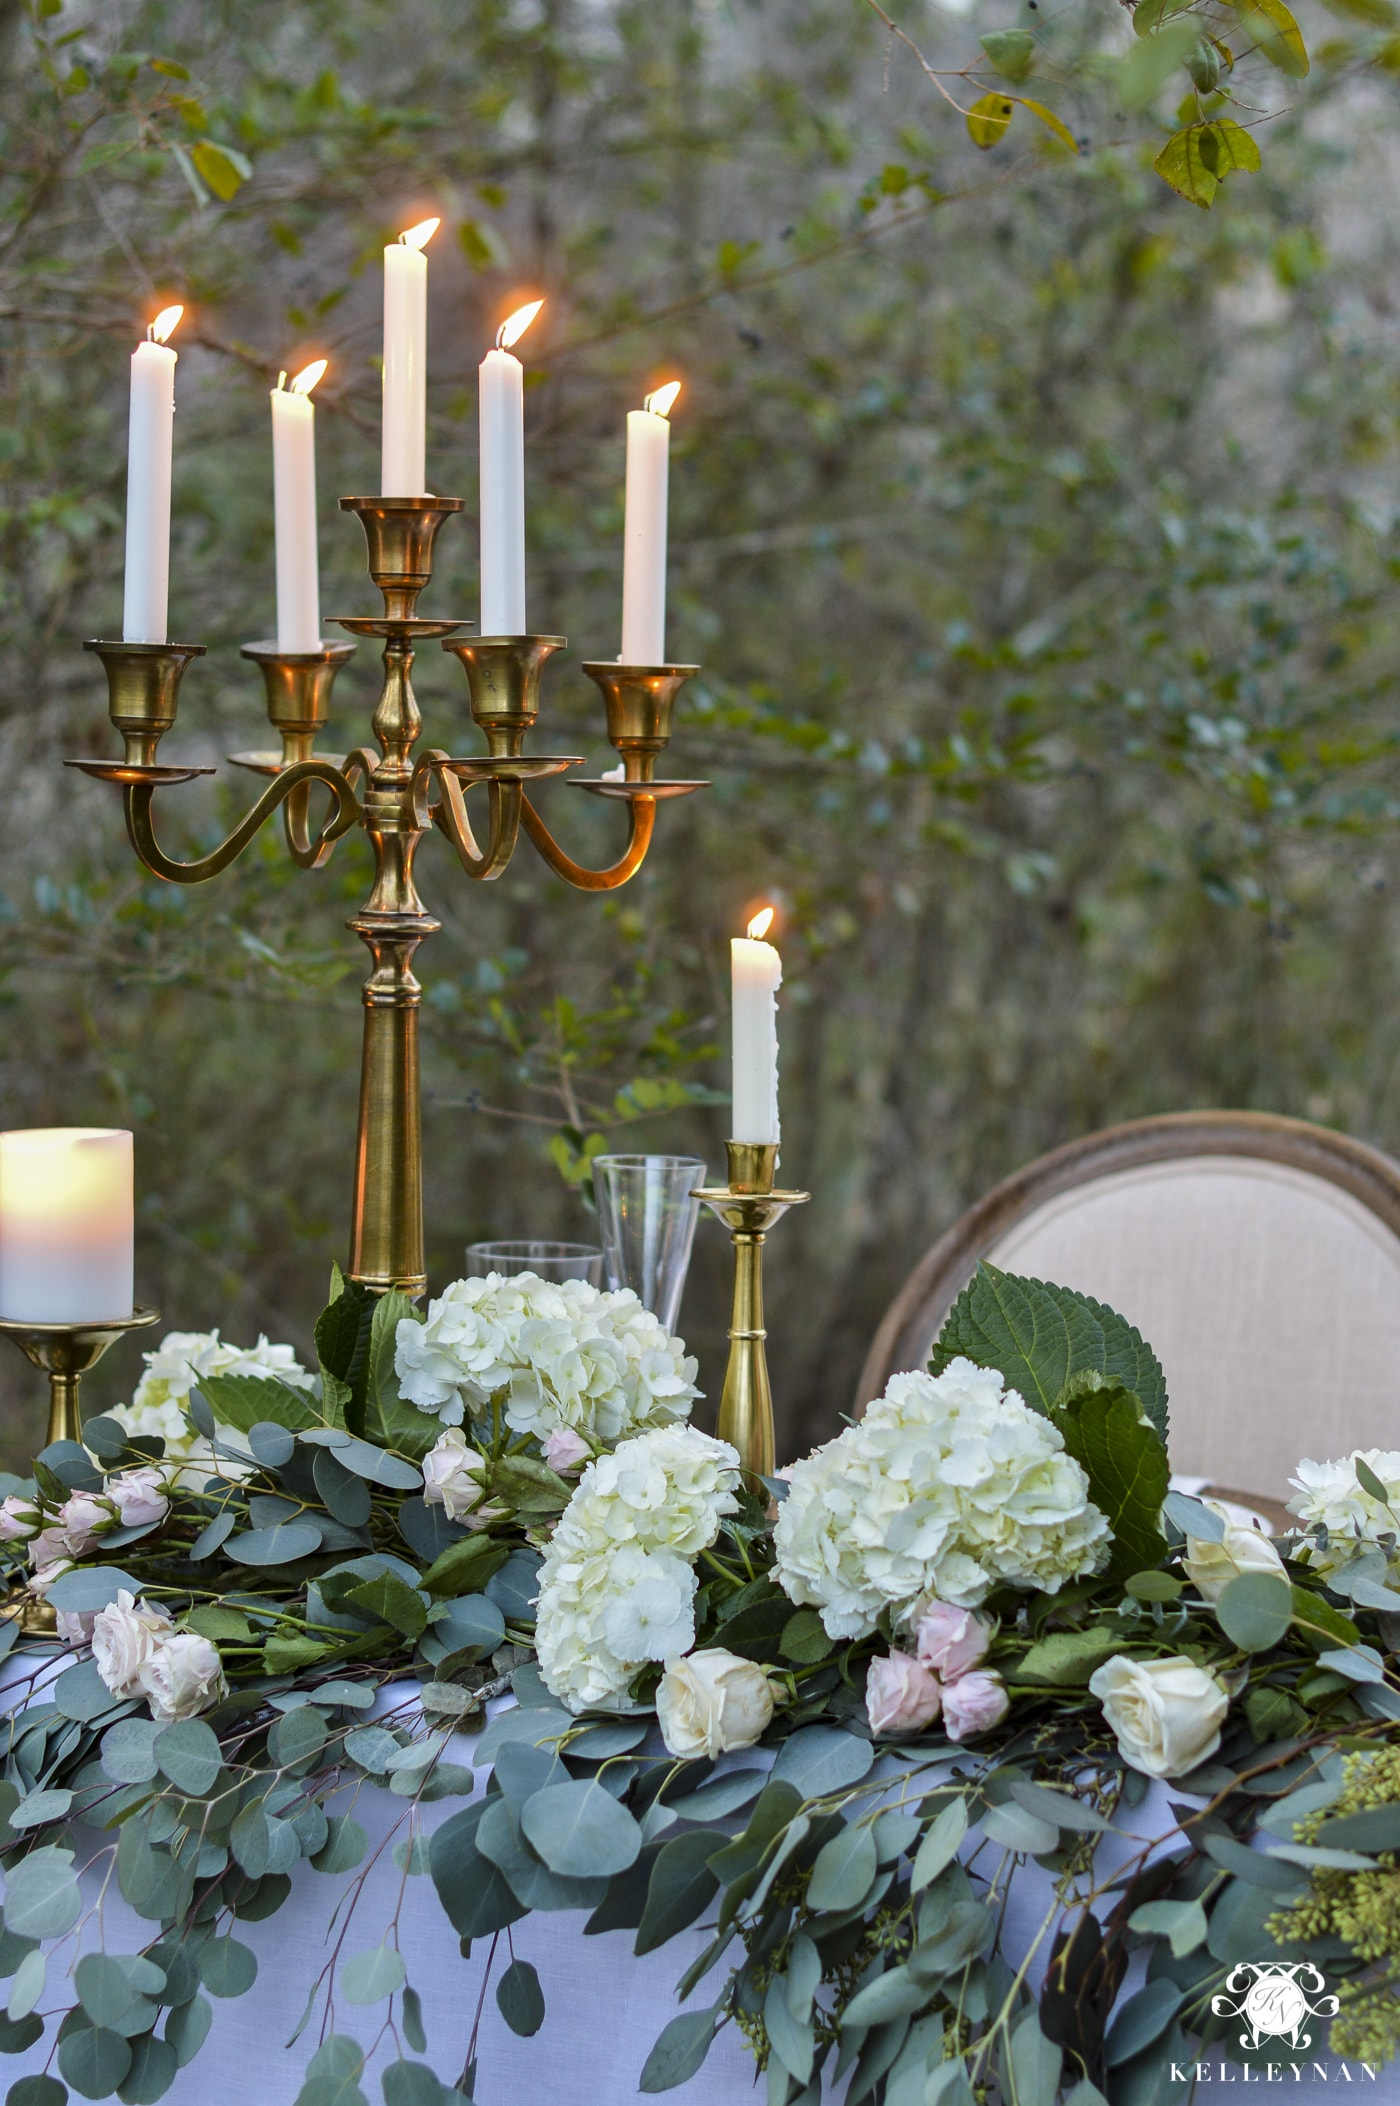 Kelley Nan | Sweetheart Table for Wedding or Valentine's Day Outdoors